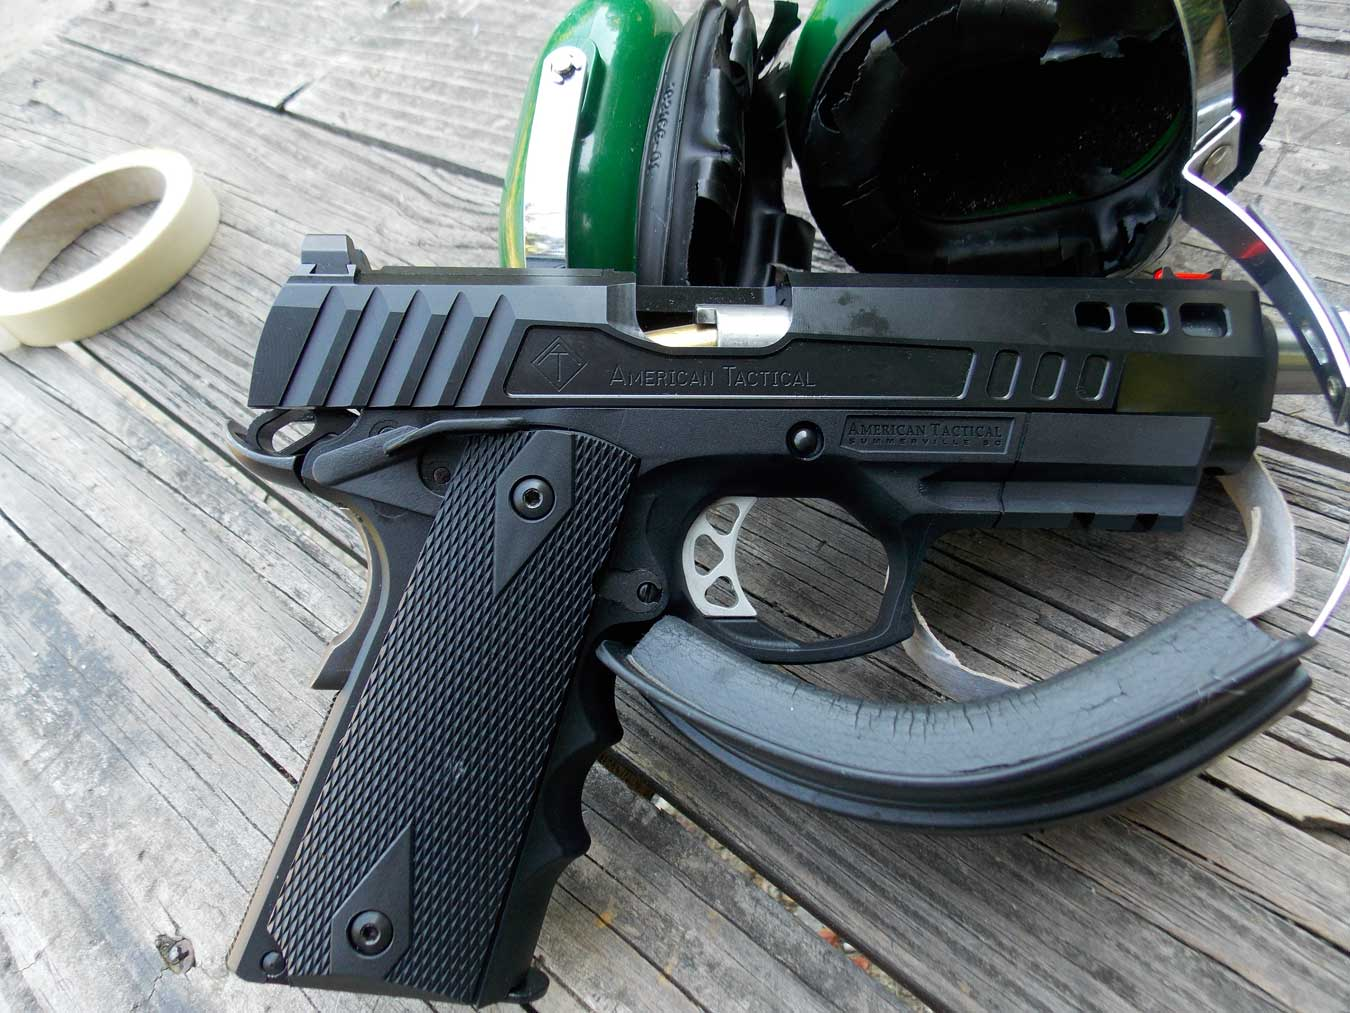 FXF-45 pistol atop a pair of ear muffs